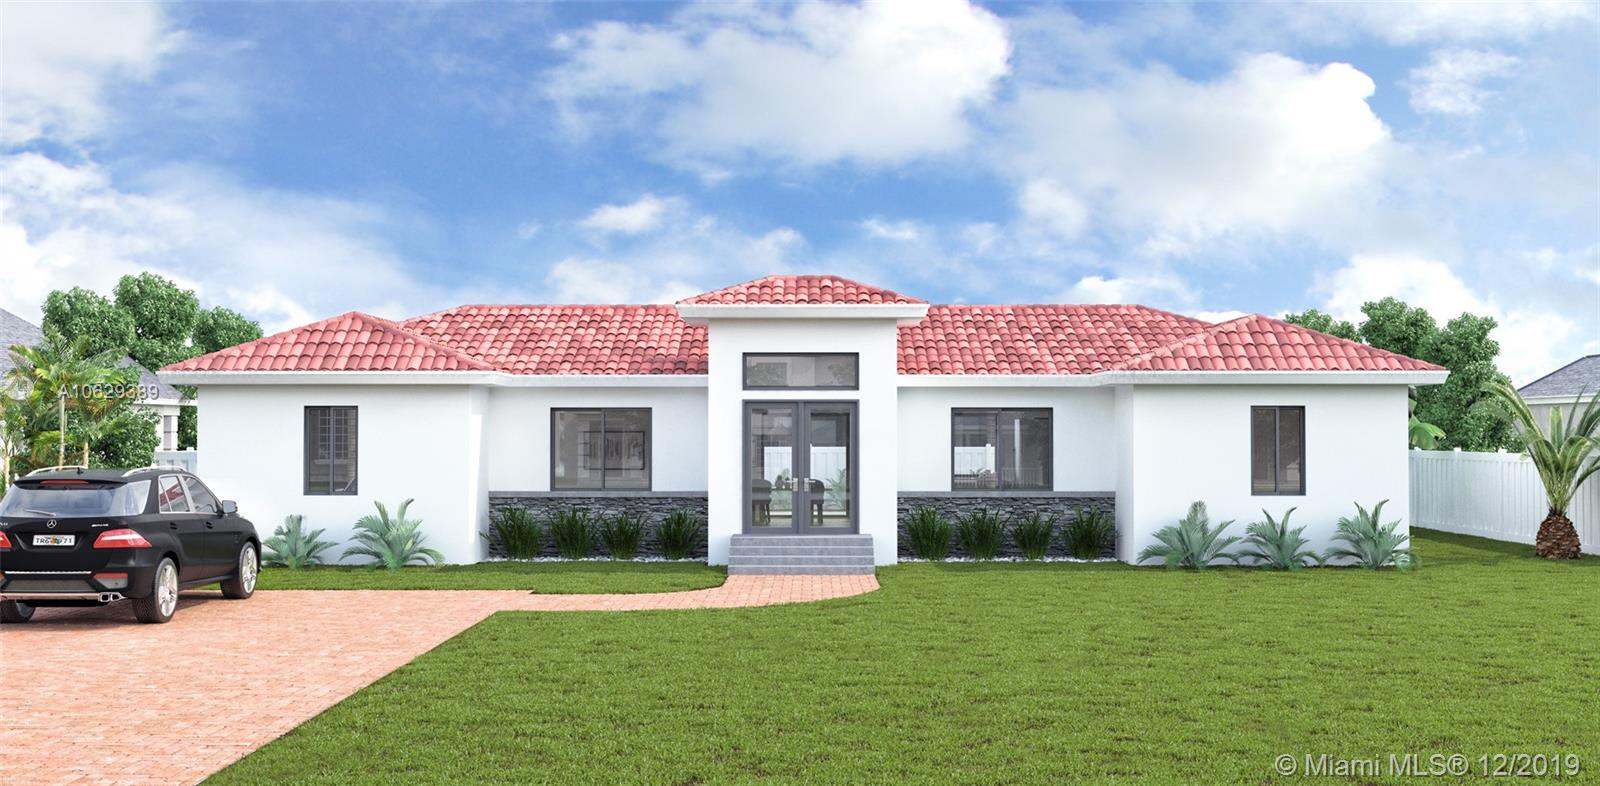 930 N E 108 ST  For Sale A10629389, FL